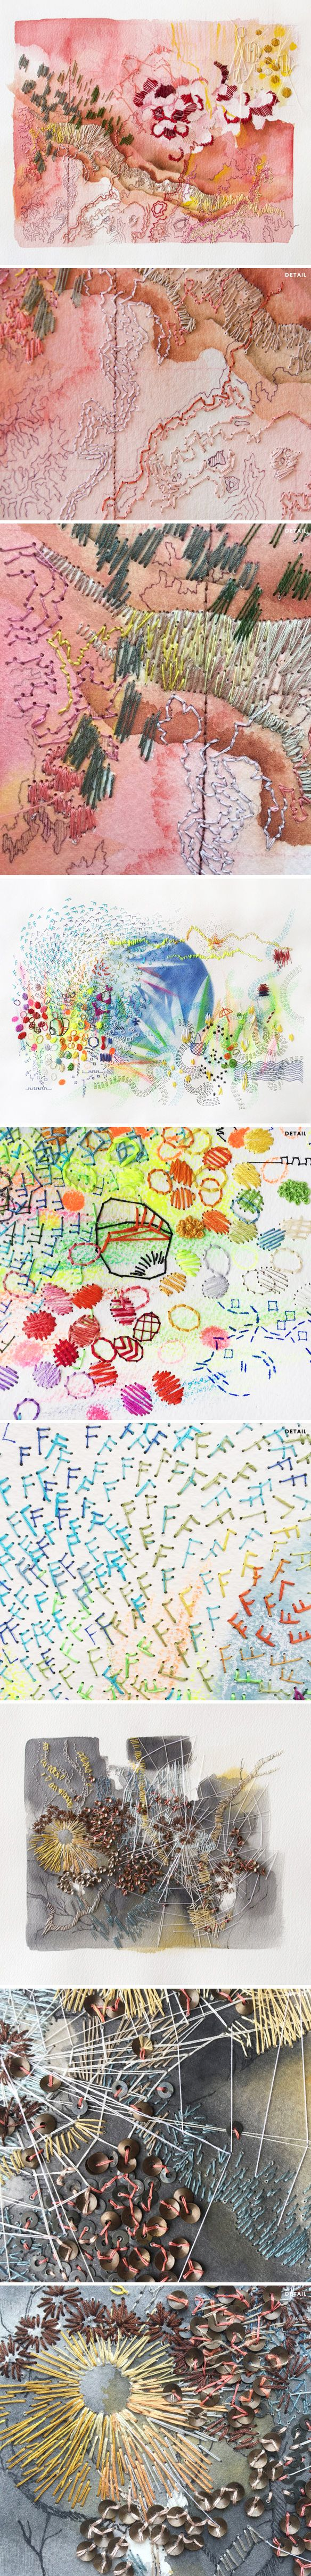 New York-based artist/graphic designer Rhian Swierat's stiched sketches combine painting, drawing, thread and sequins.